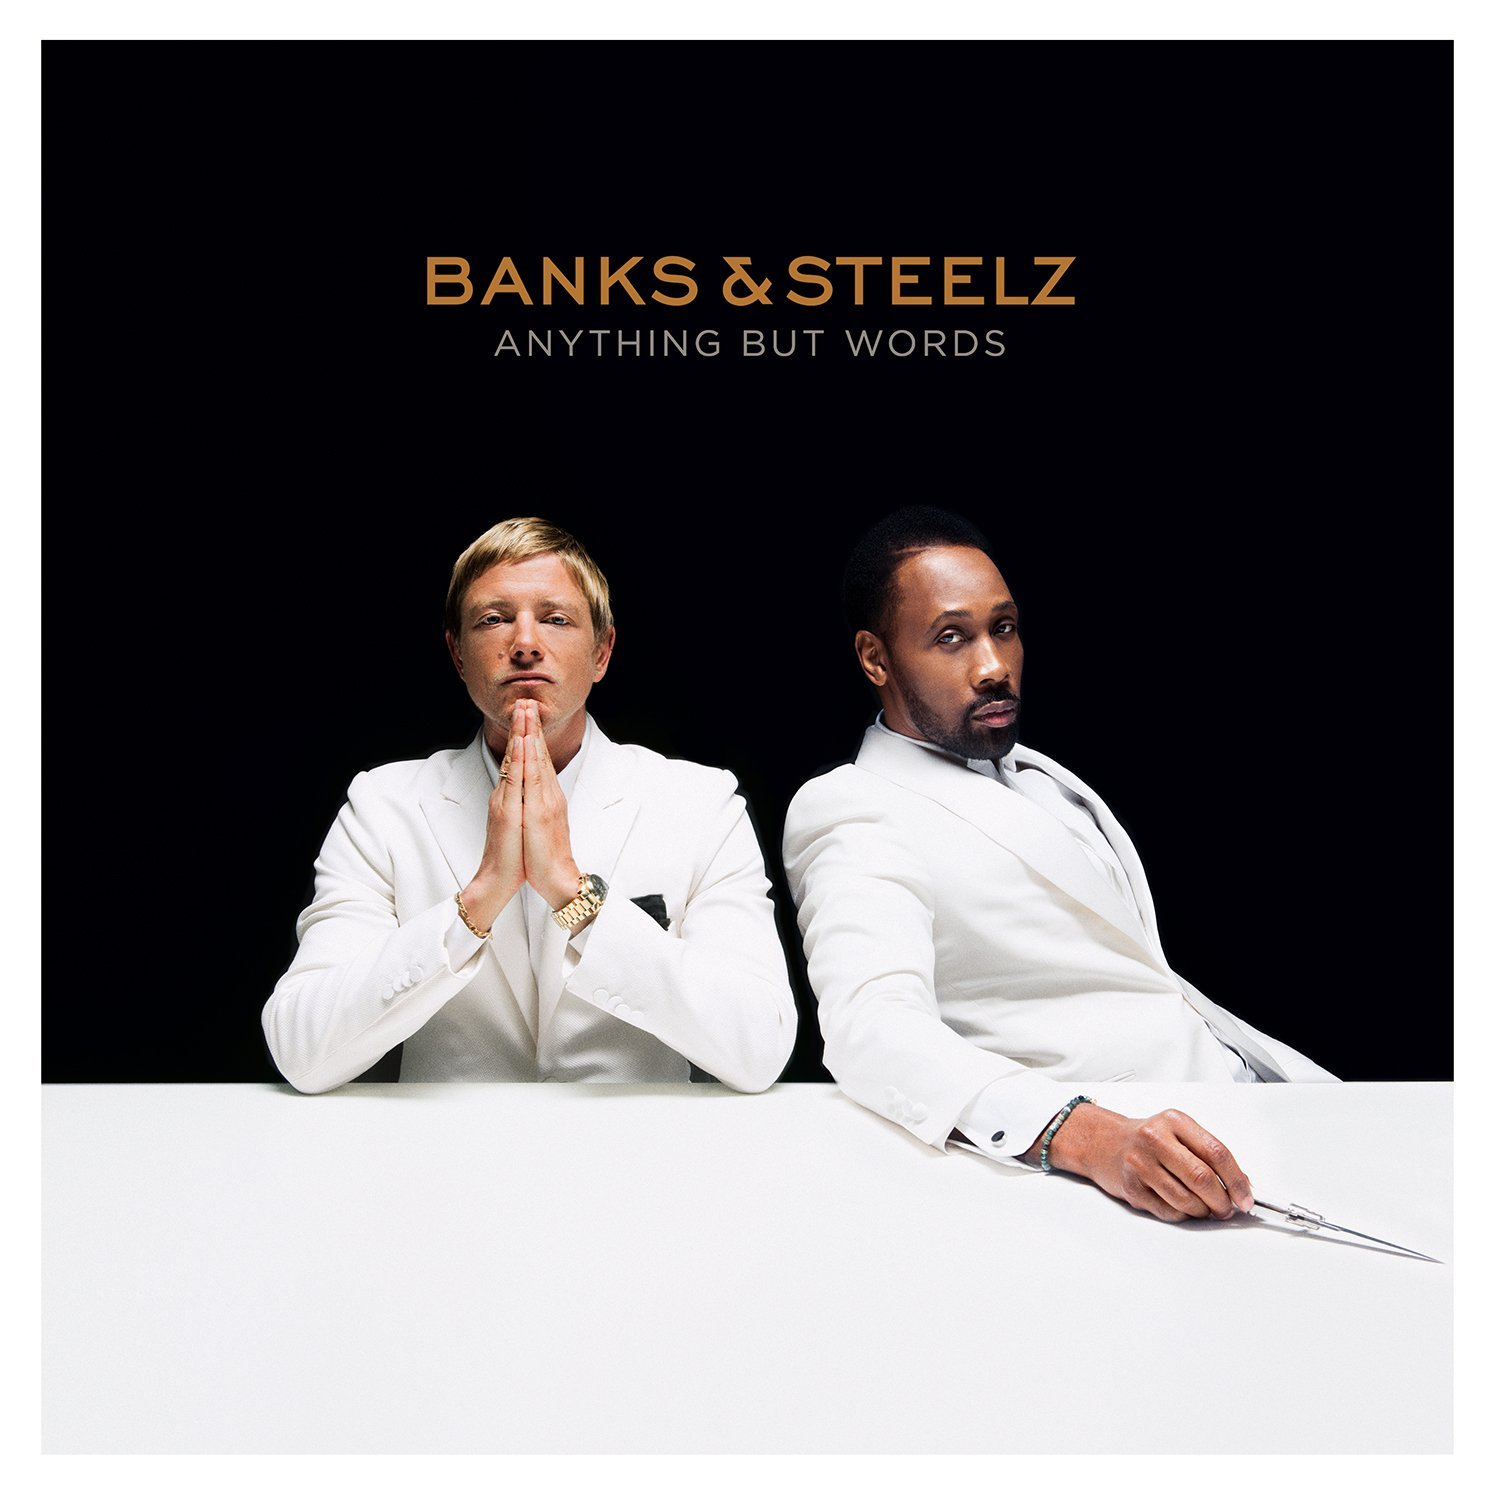 Banks & Steelz Offer Compelling, Eclectic LP with 'Anything But Words'